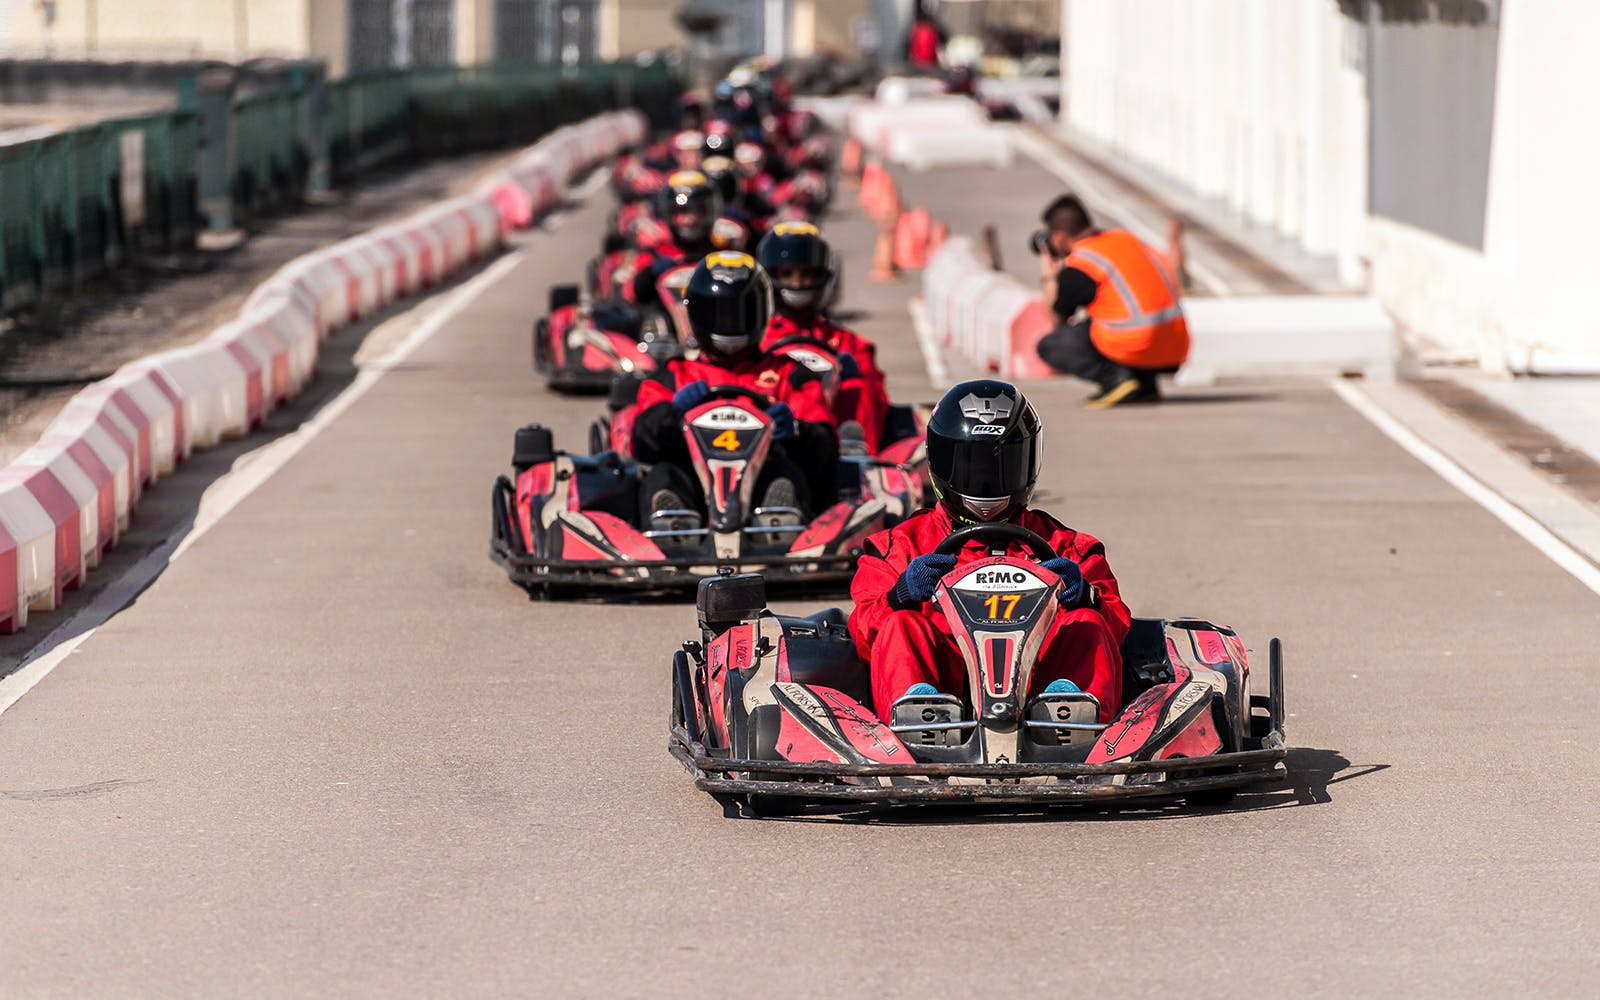 Go Kart at Al Wasal Sports Club